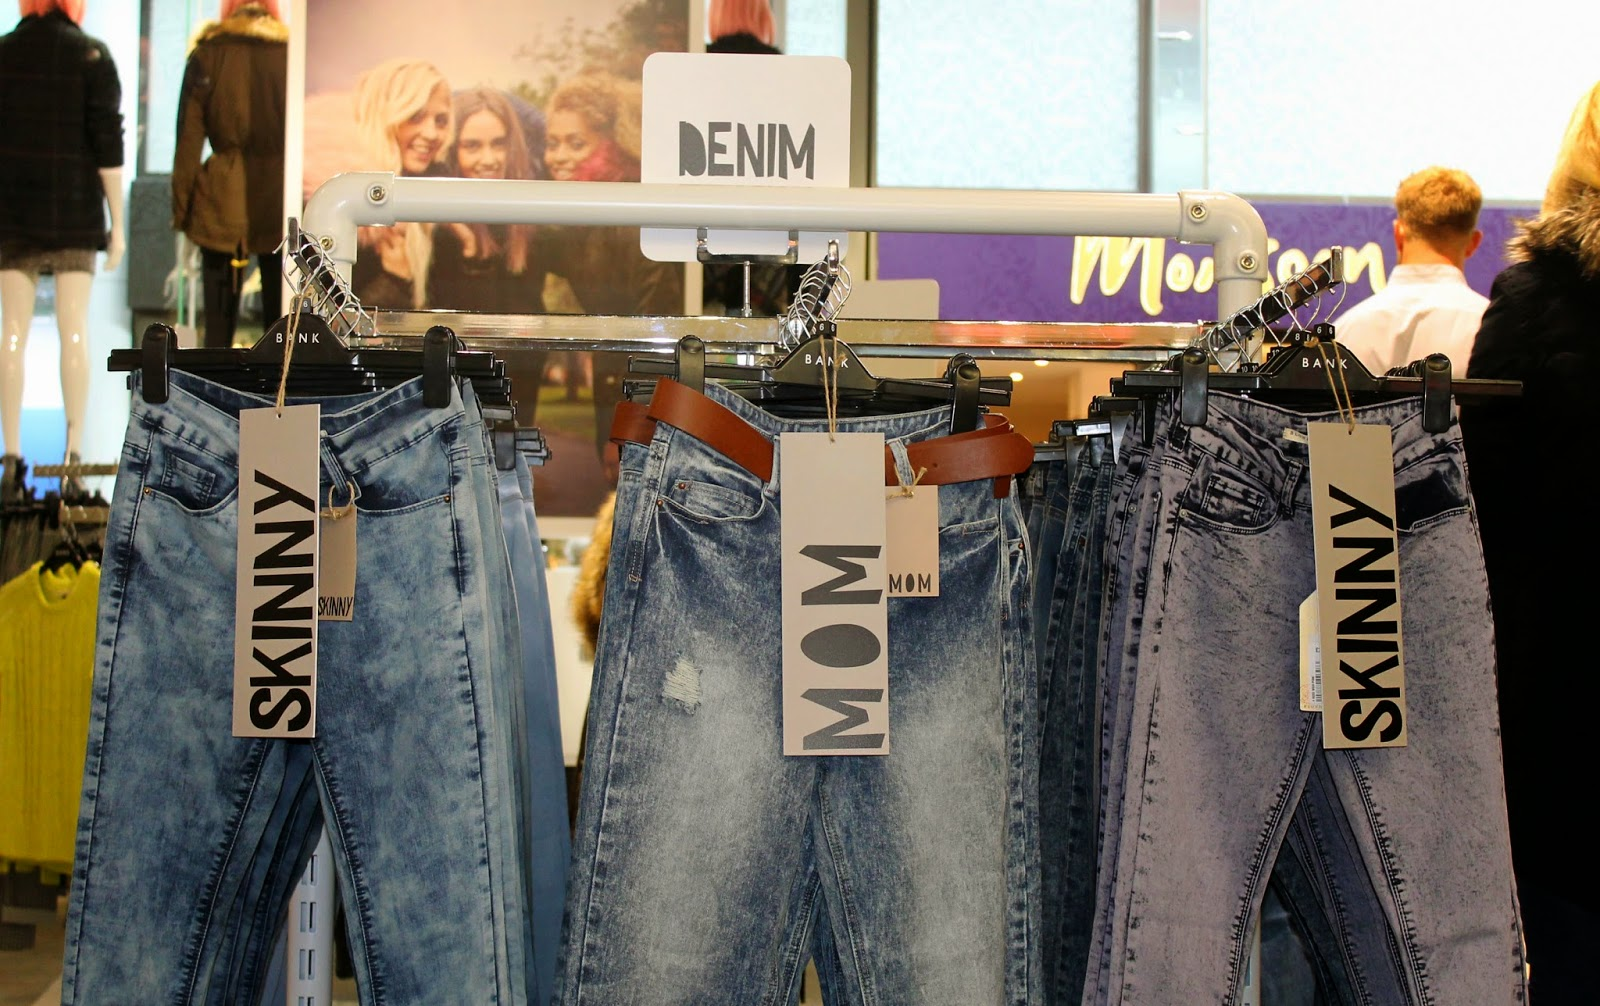 BANK fashion warrington denim